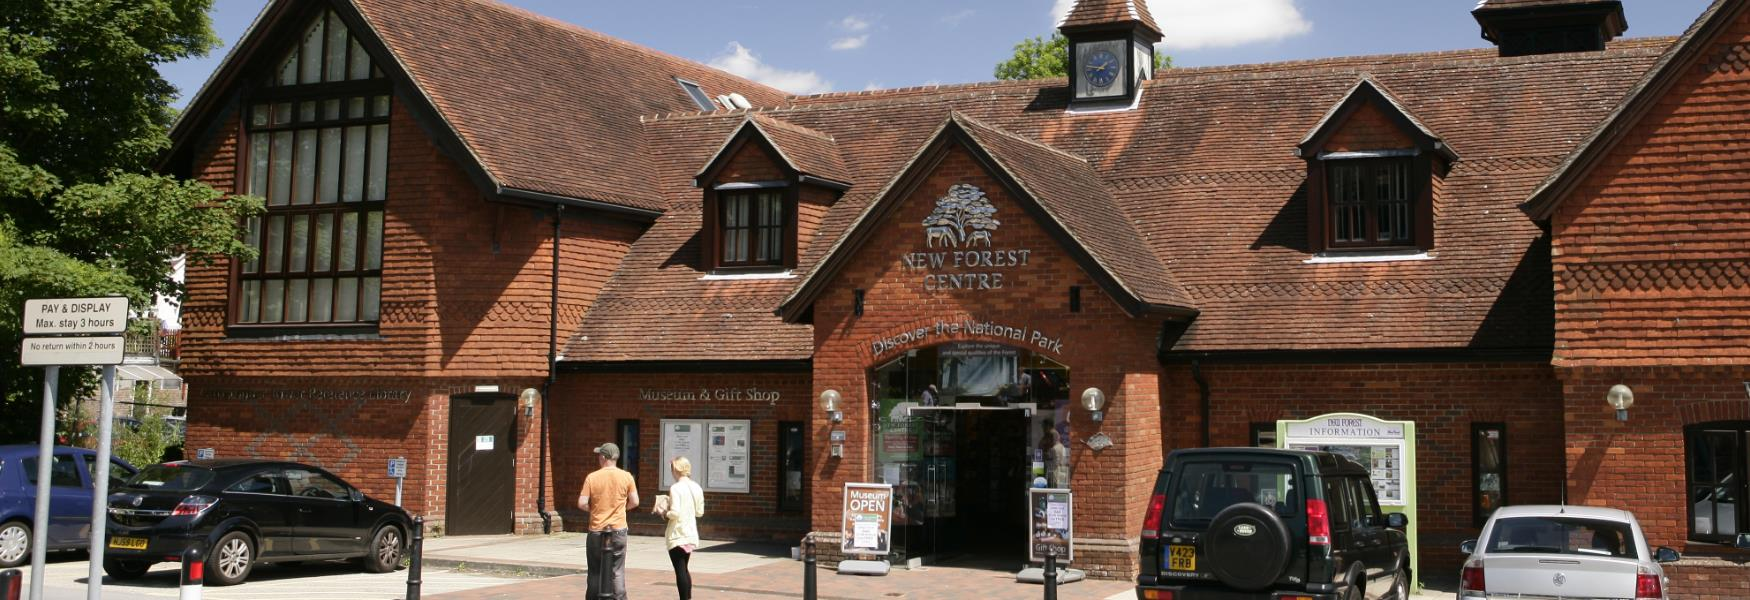 arts craft and museum attraction at the new forest centre in the new forest